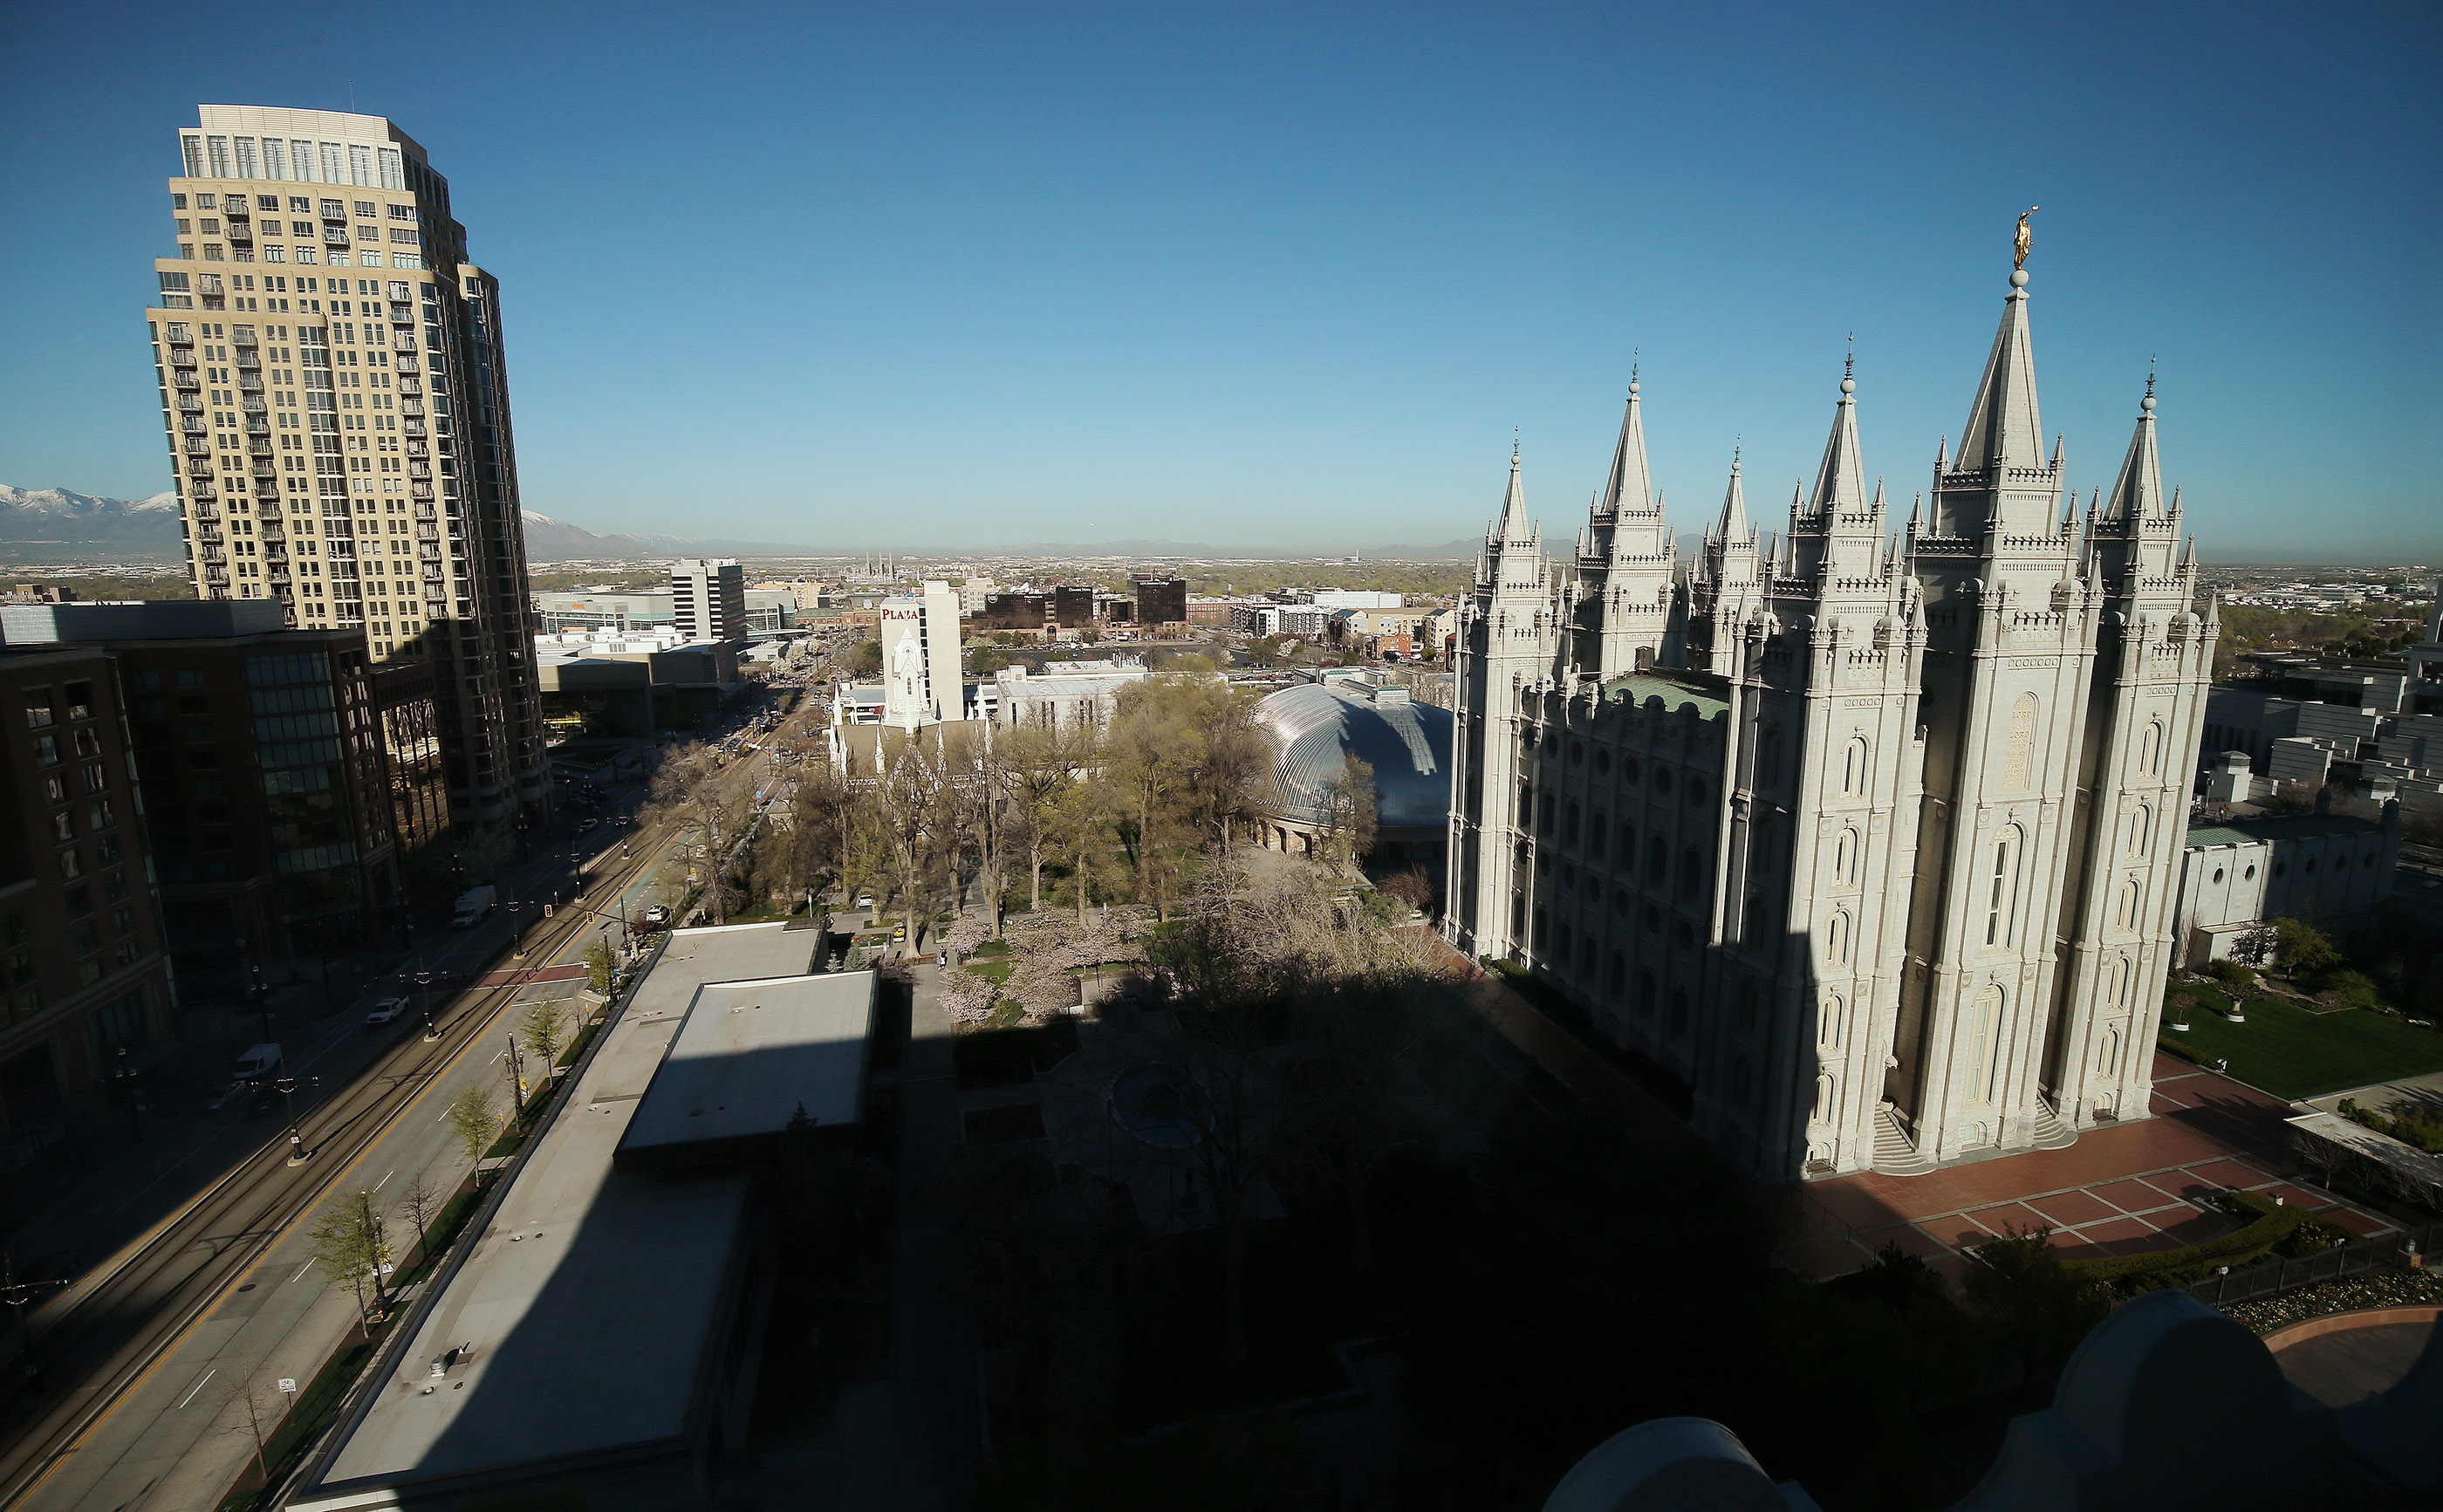 The Salt Lake Temple in Salt Lake City on Friday, April 19, 2019. Church officials announced renovations and changes to it and the grounds.